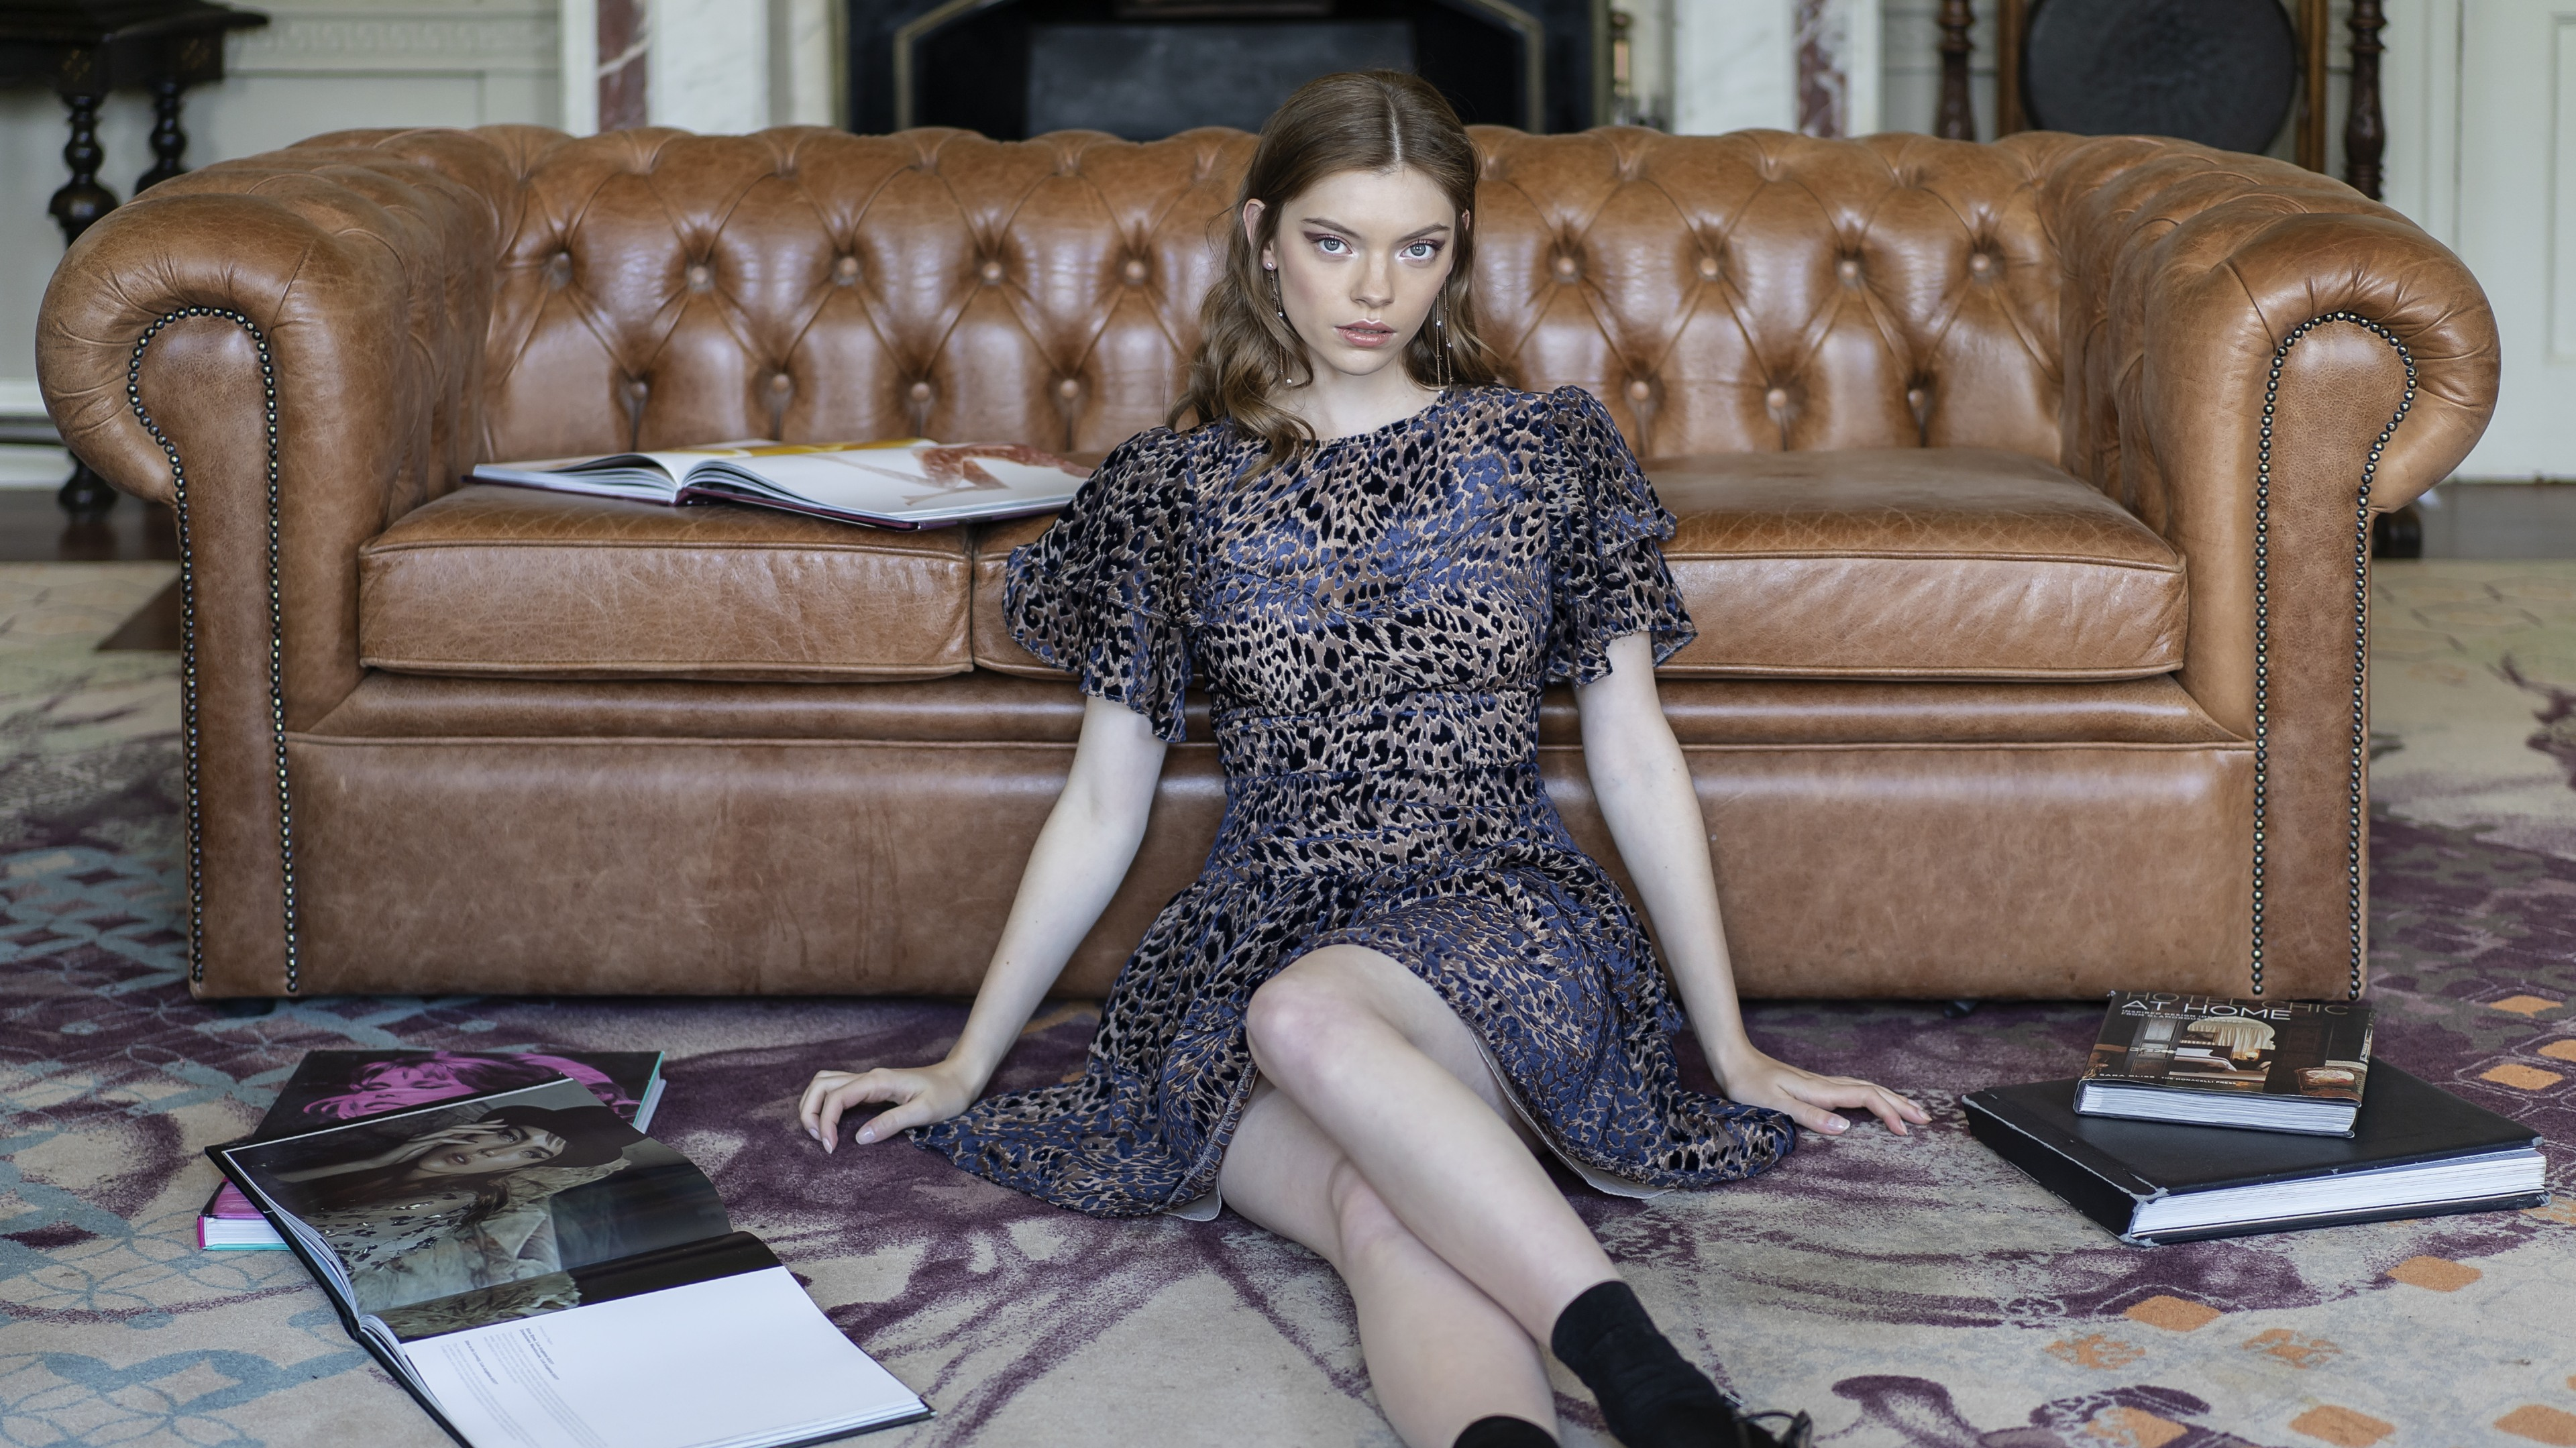 Young woman by sofa